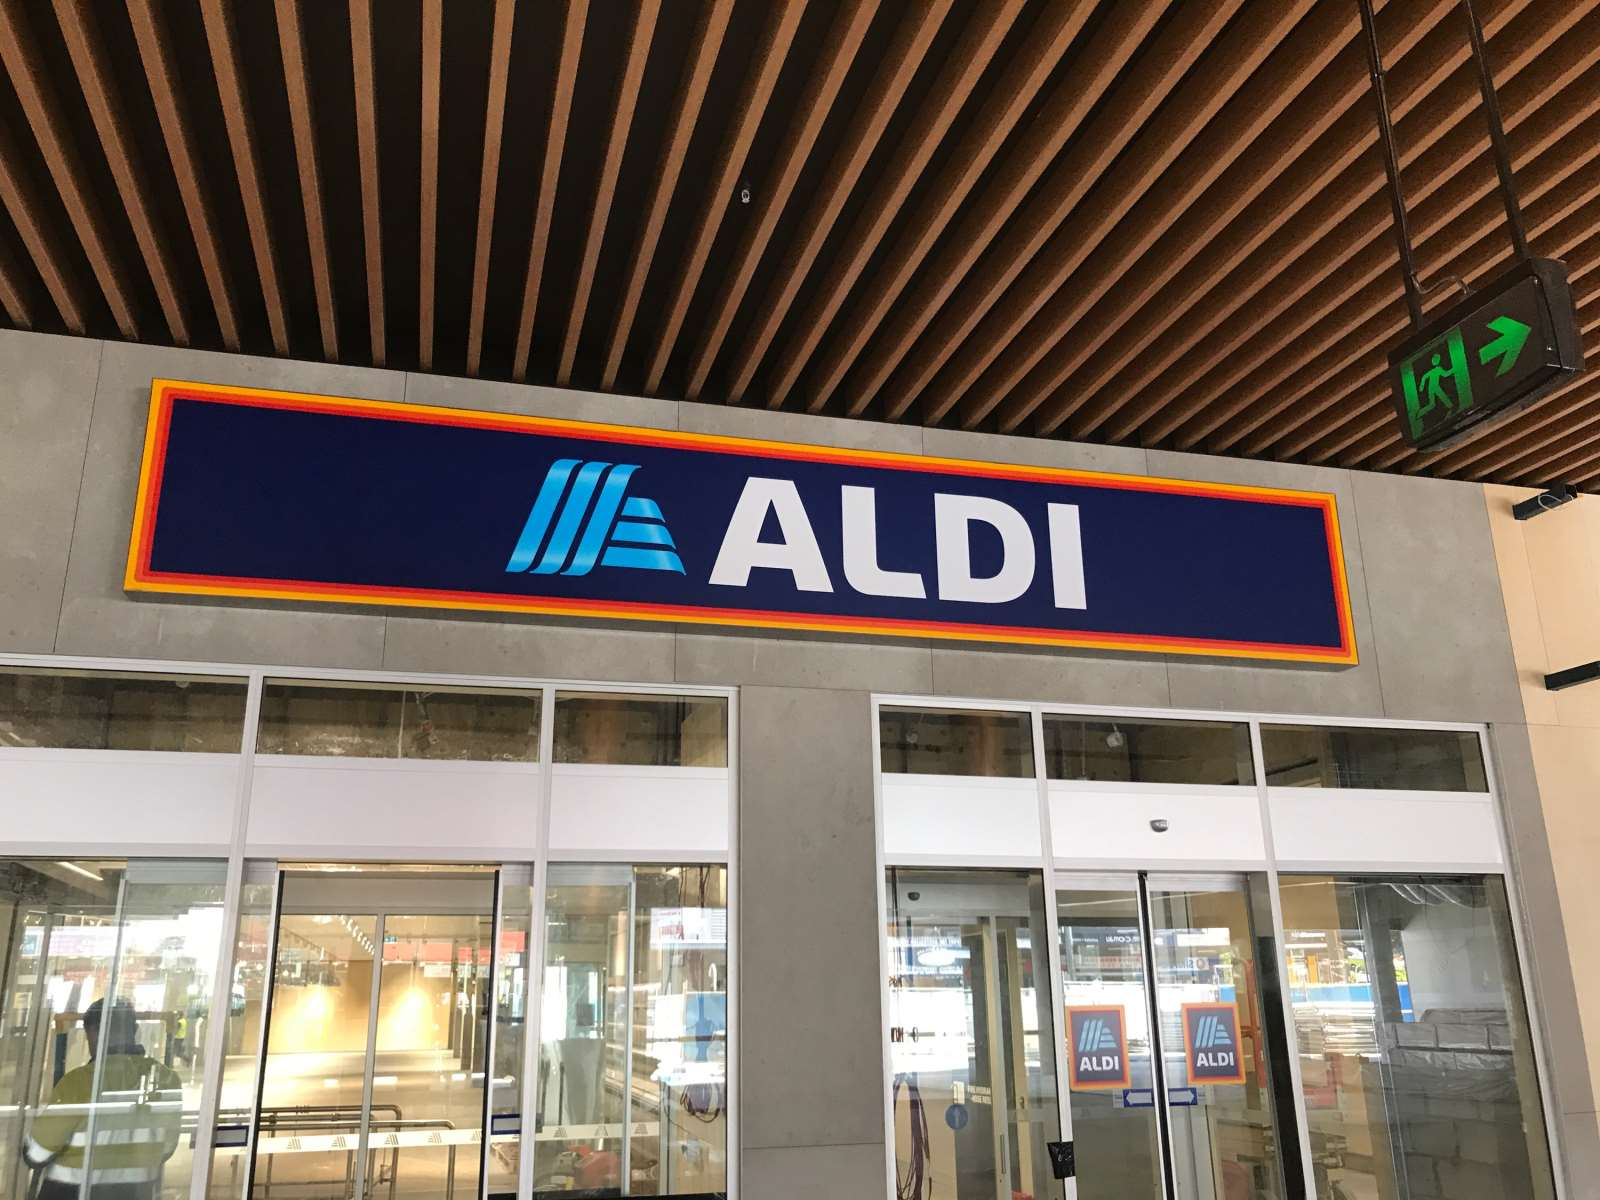 Aldi shopfront sign marketing